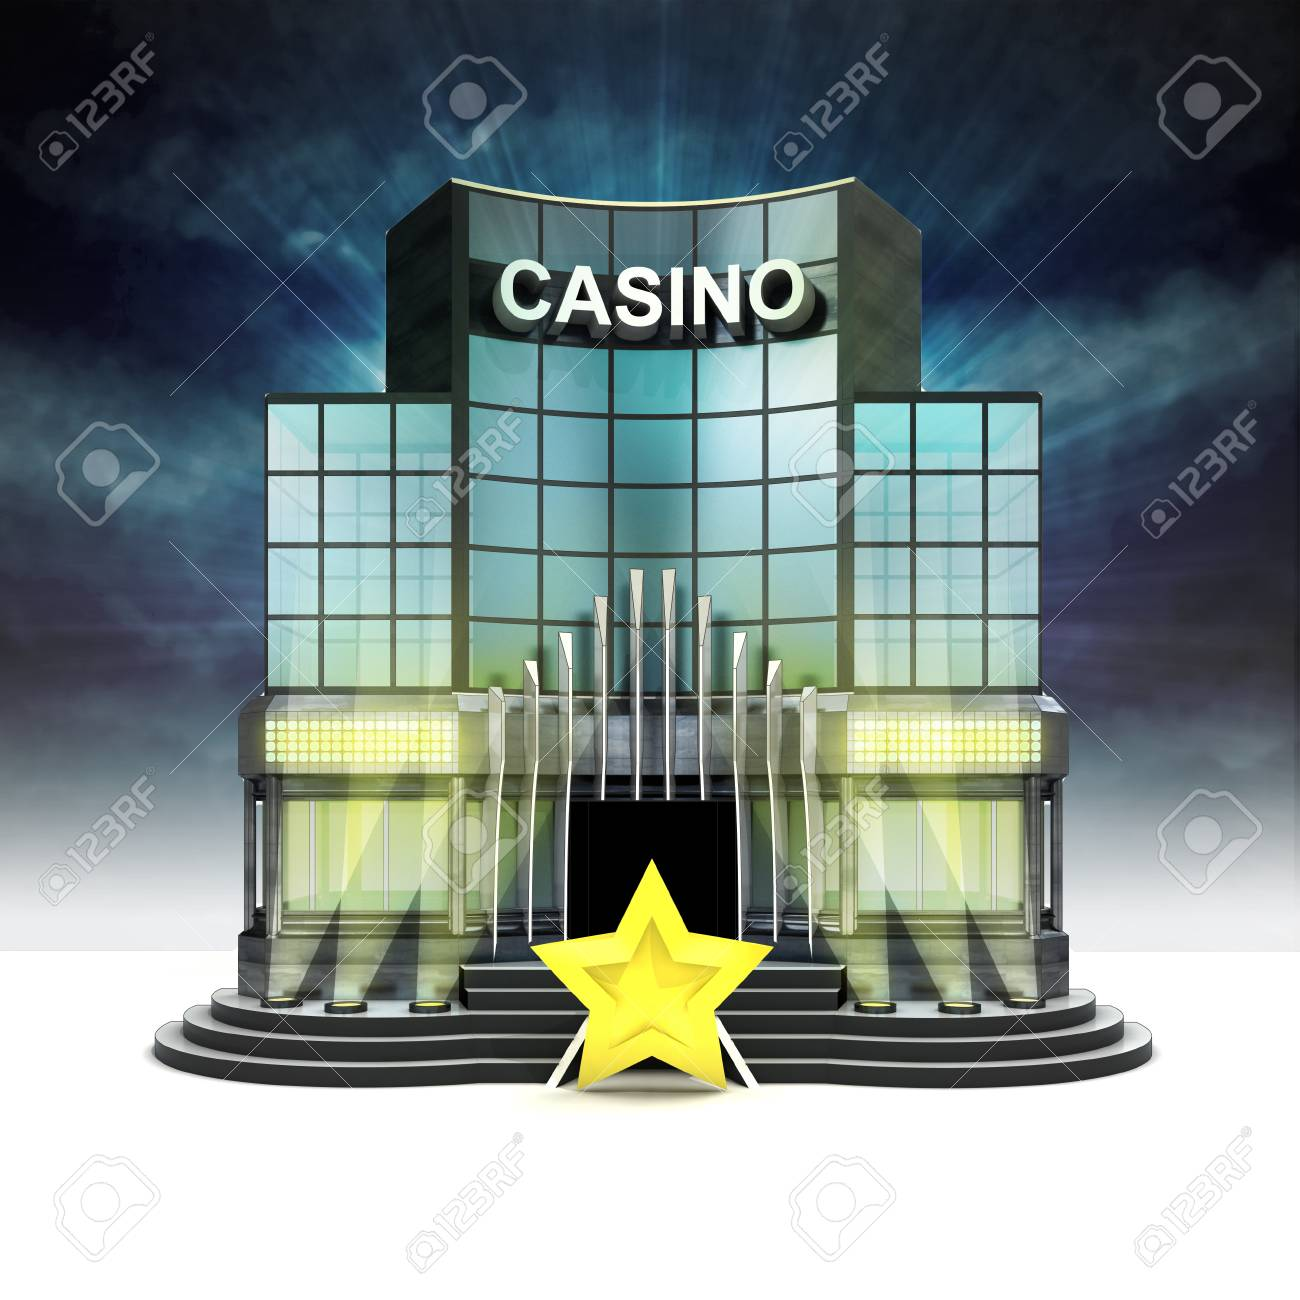 top rating star in front of illuminated casino at night illustration Stock Photo - 28538304